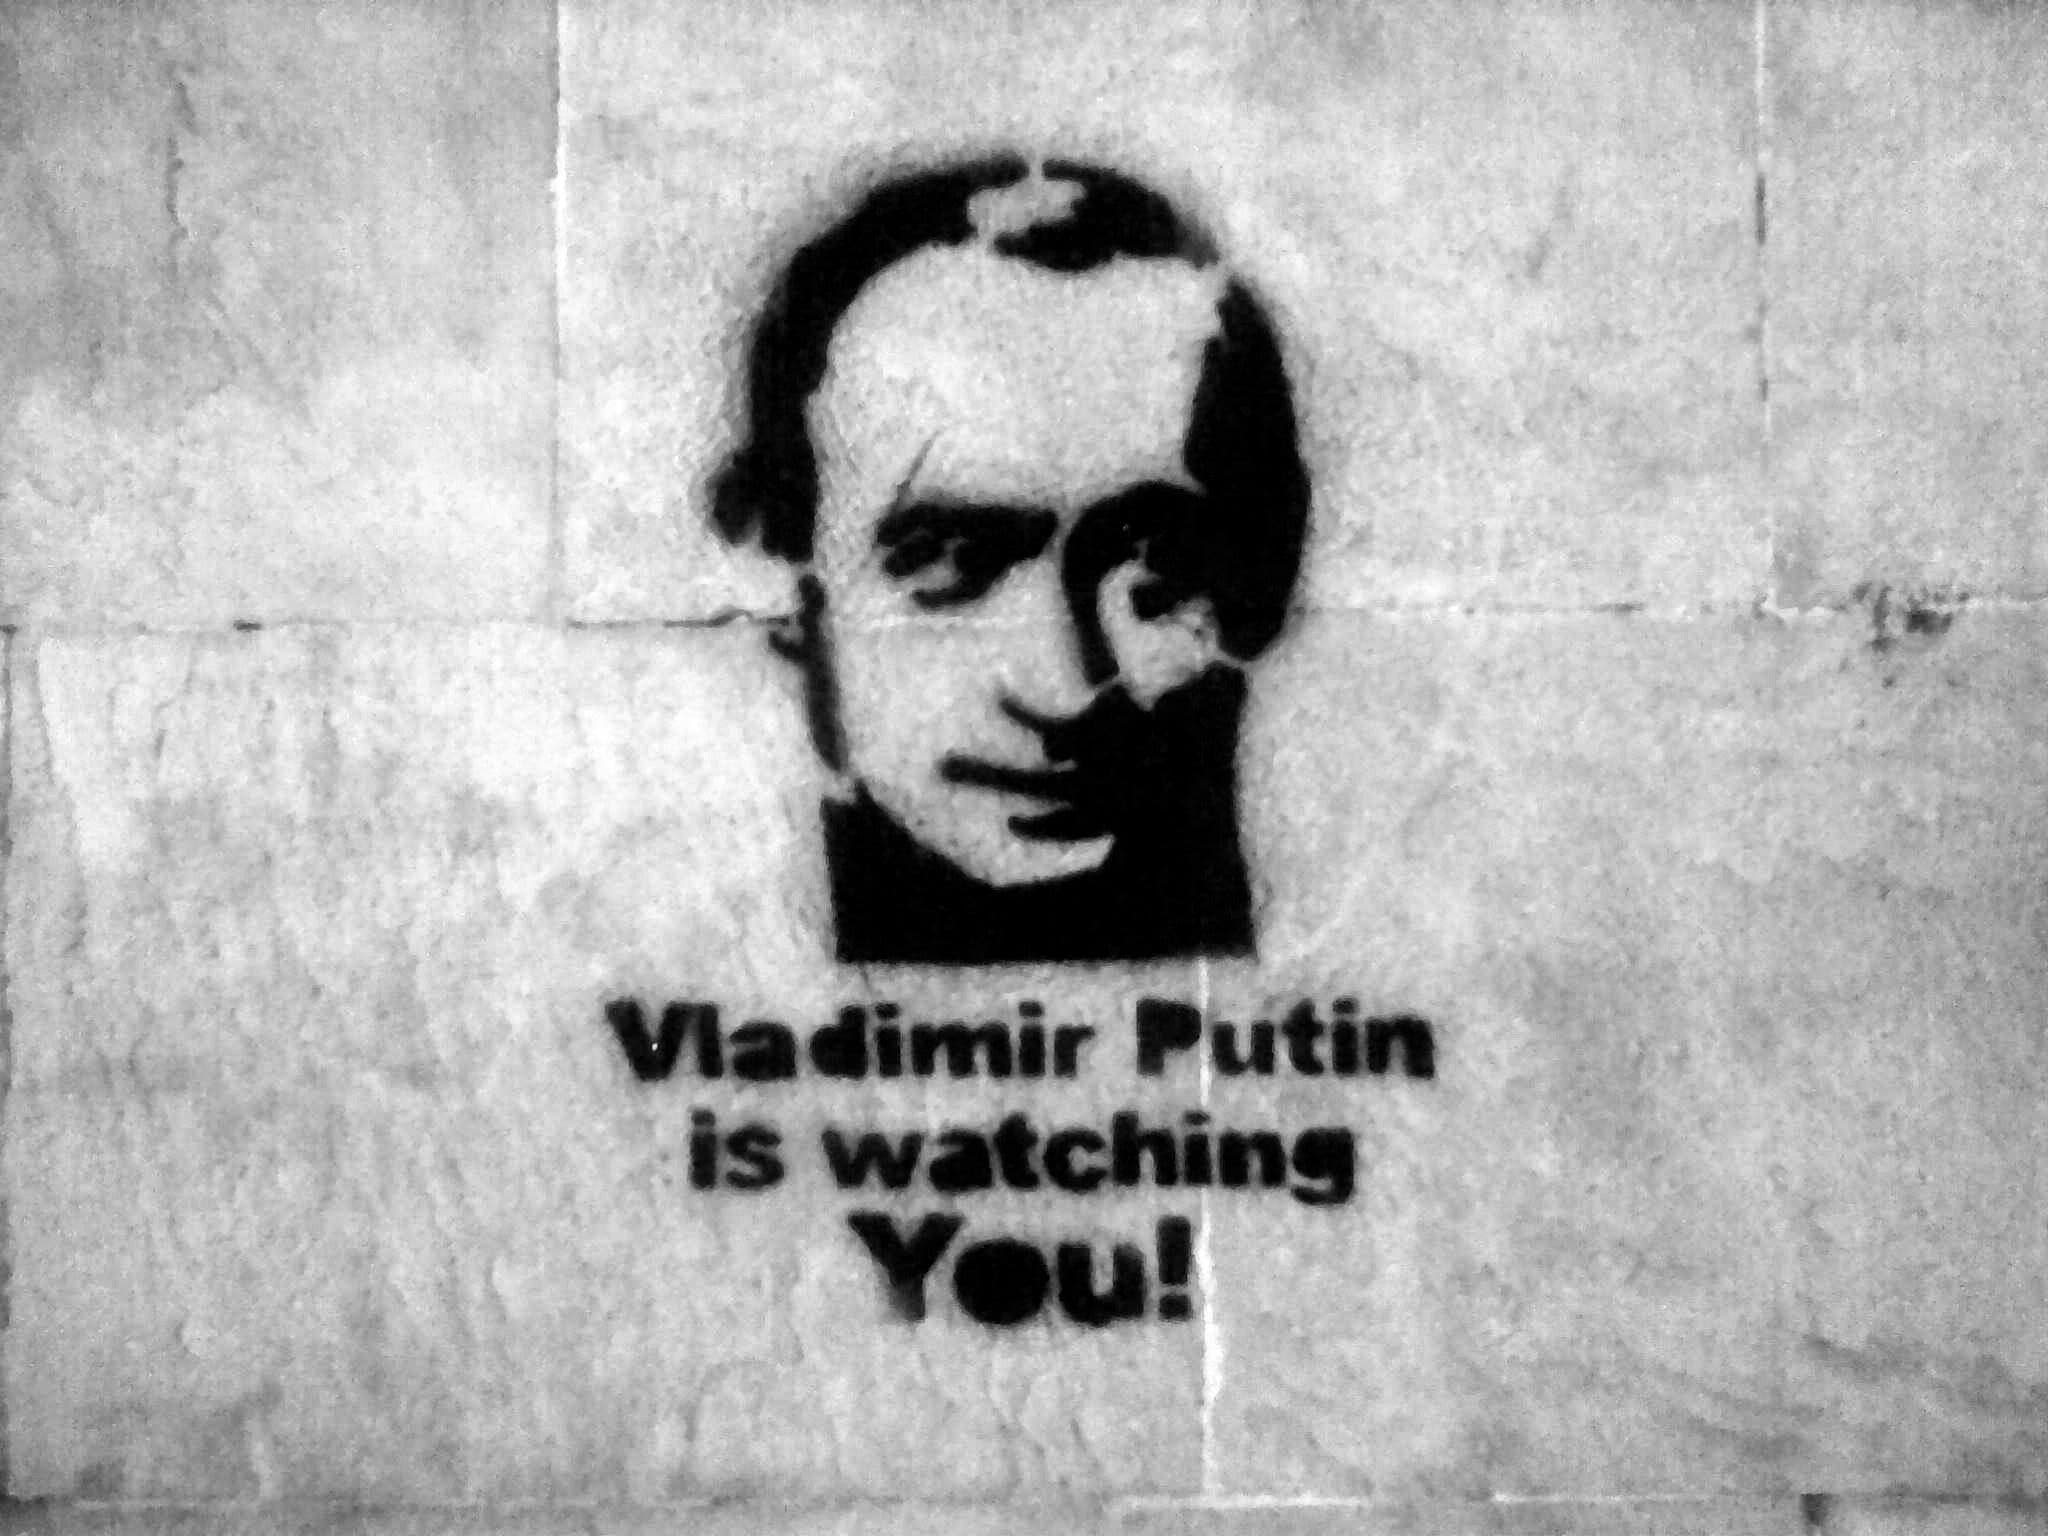 vladimir-putin-is-watching-you